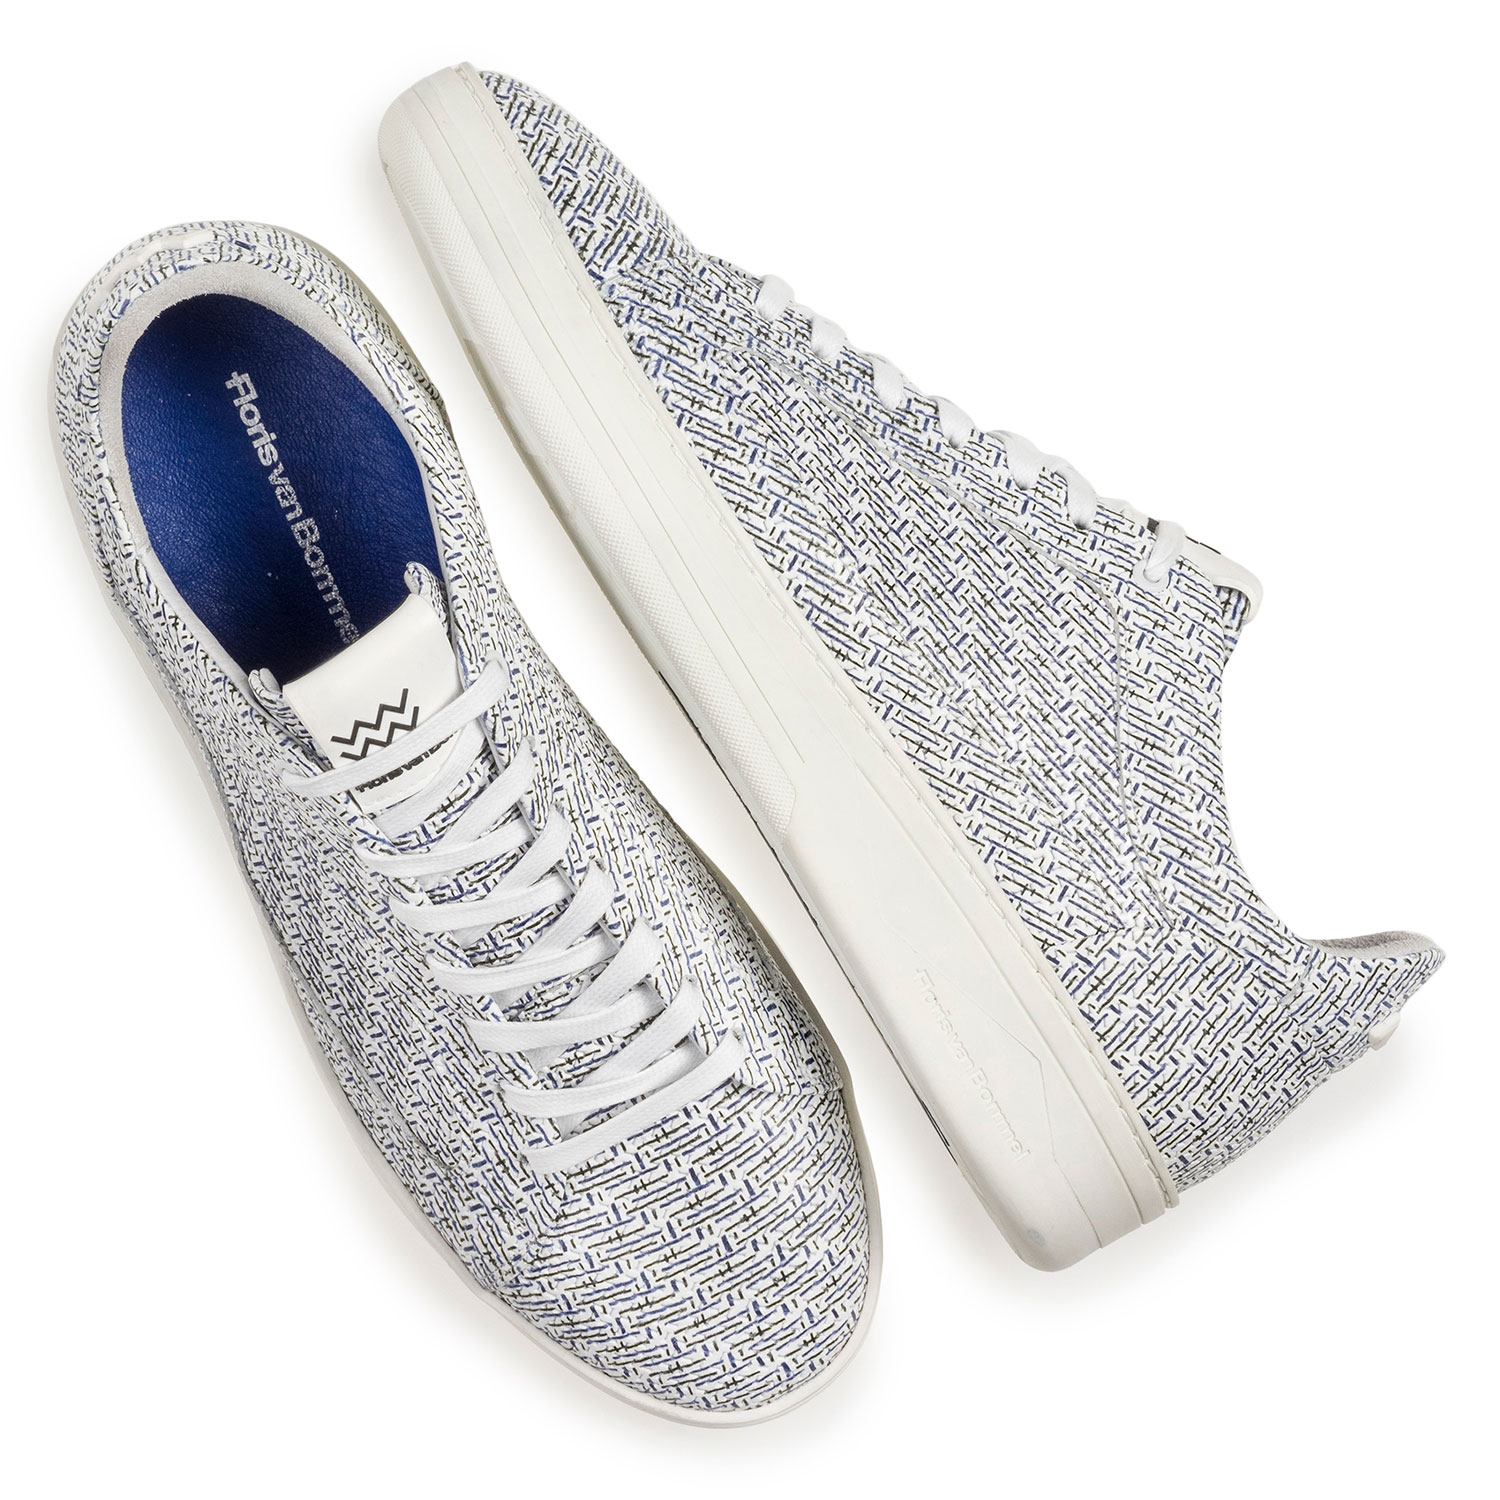 13265/01 - White leather sneaker with blue print